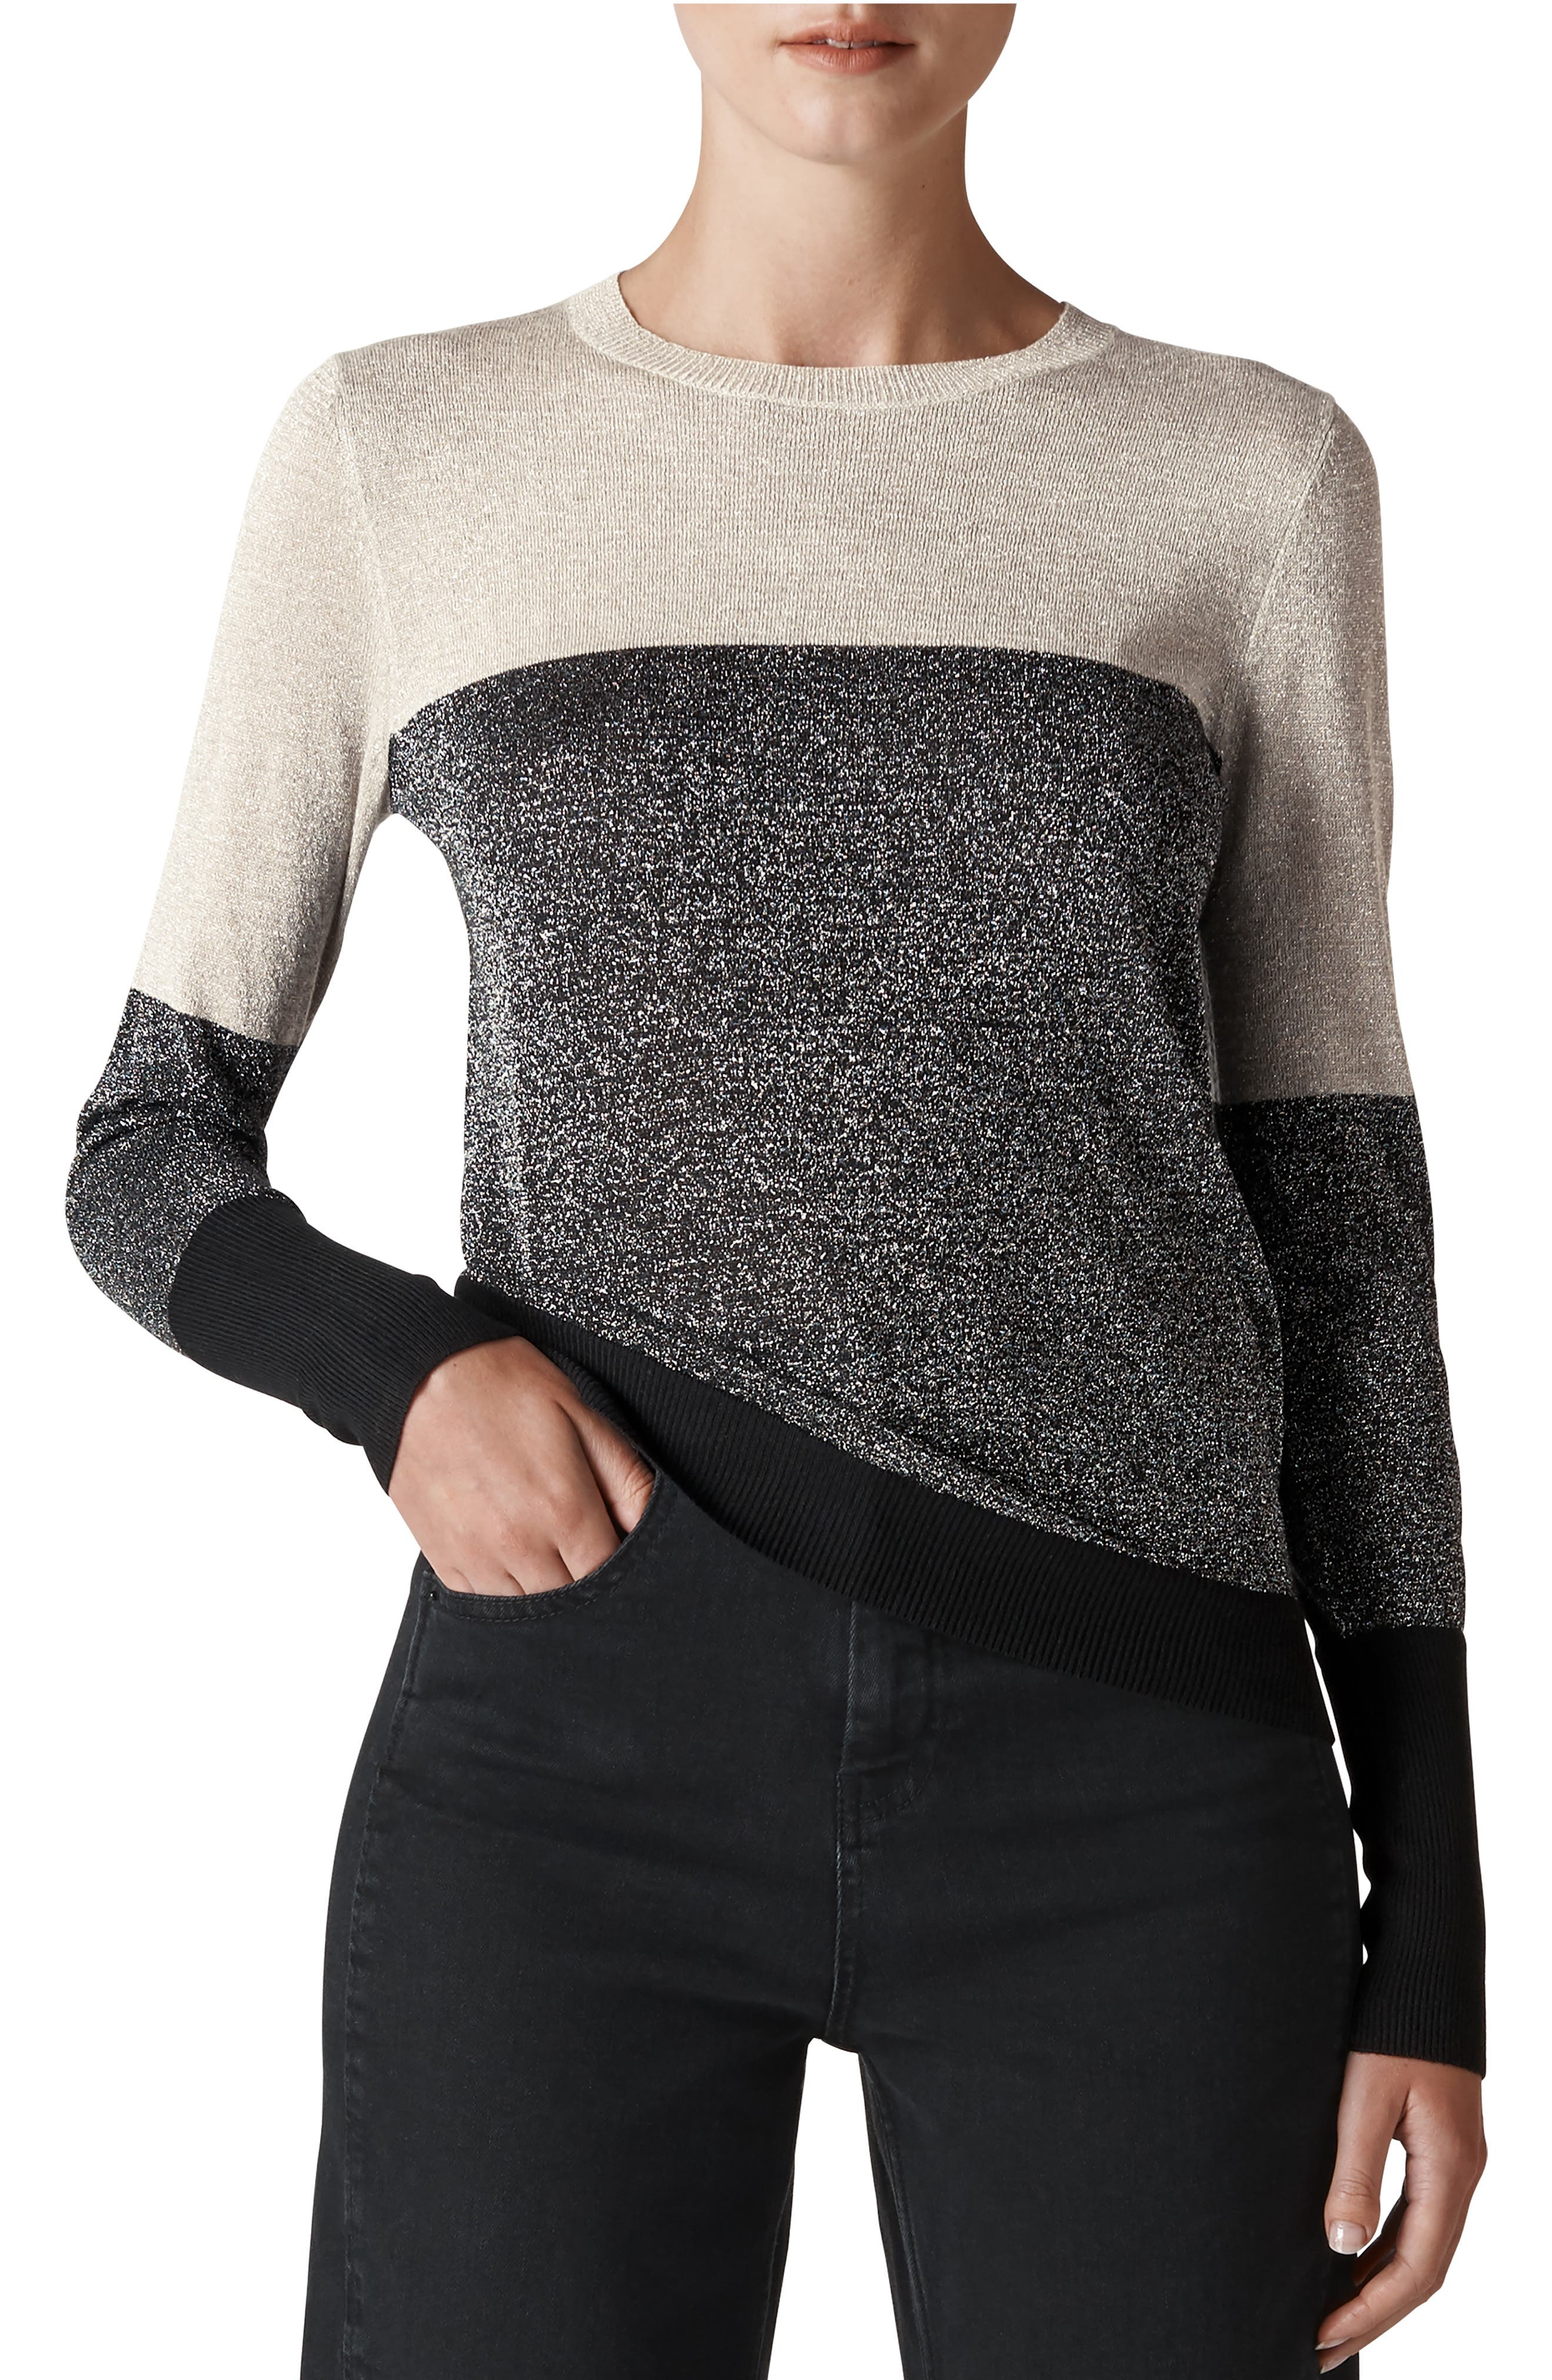 WHISTLES Colorblock Sparkle Sweater, Main, color, 022